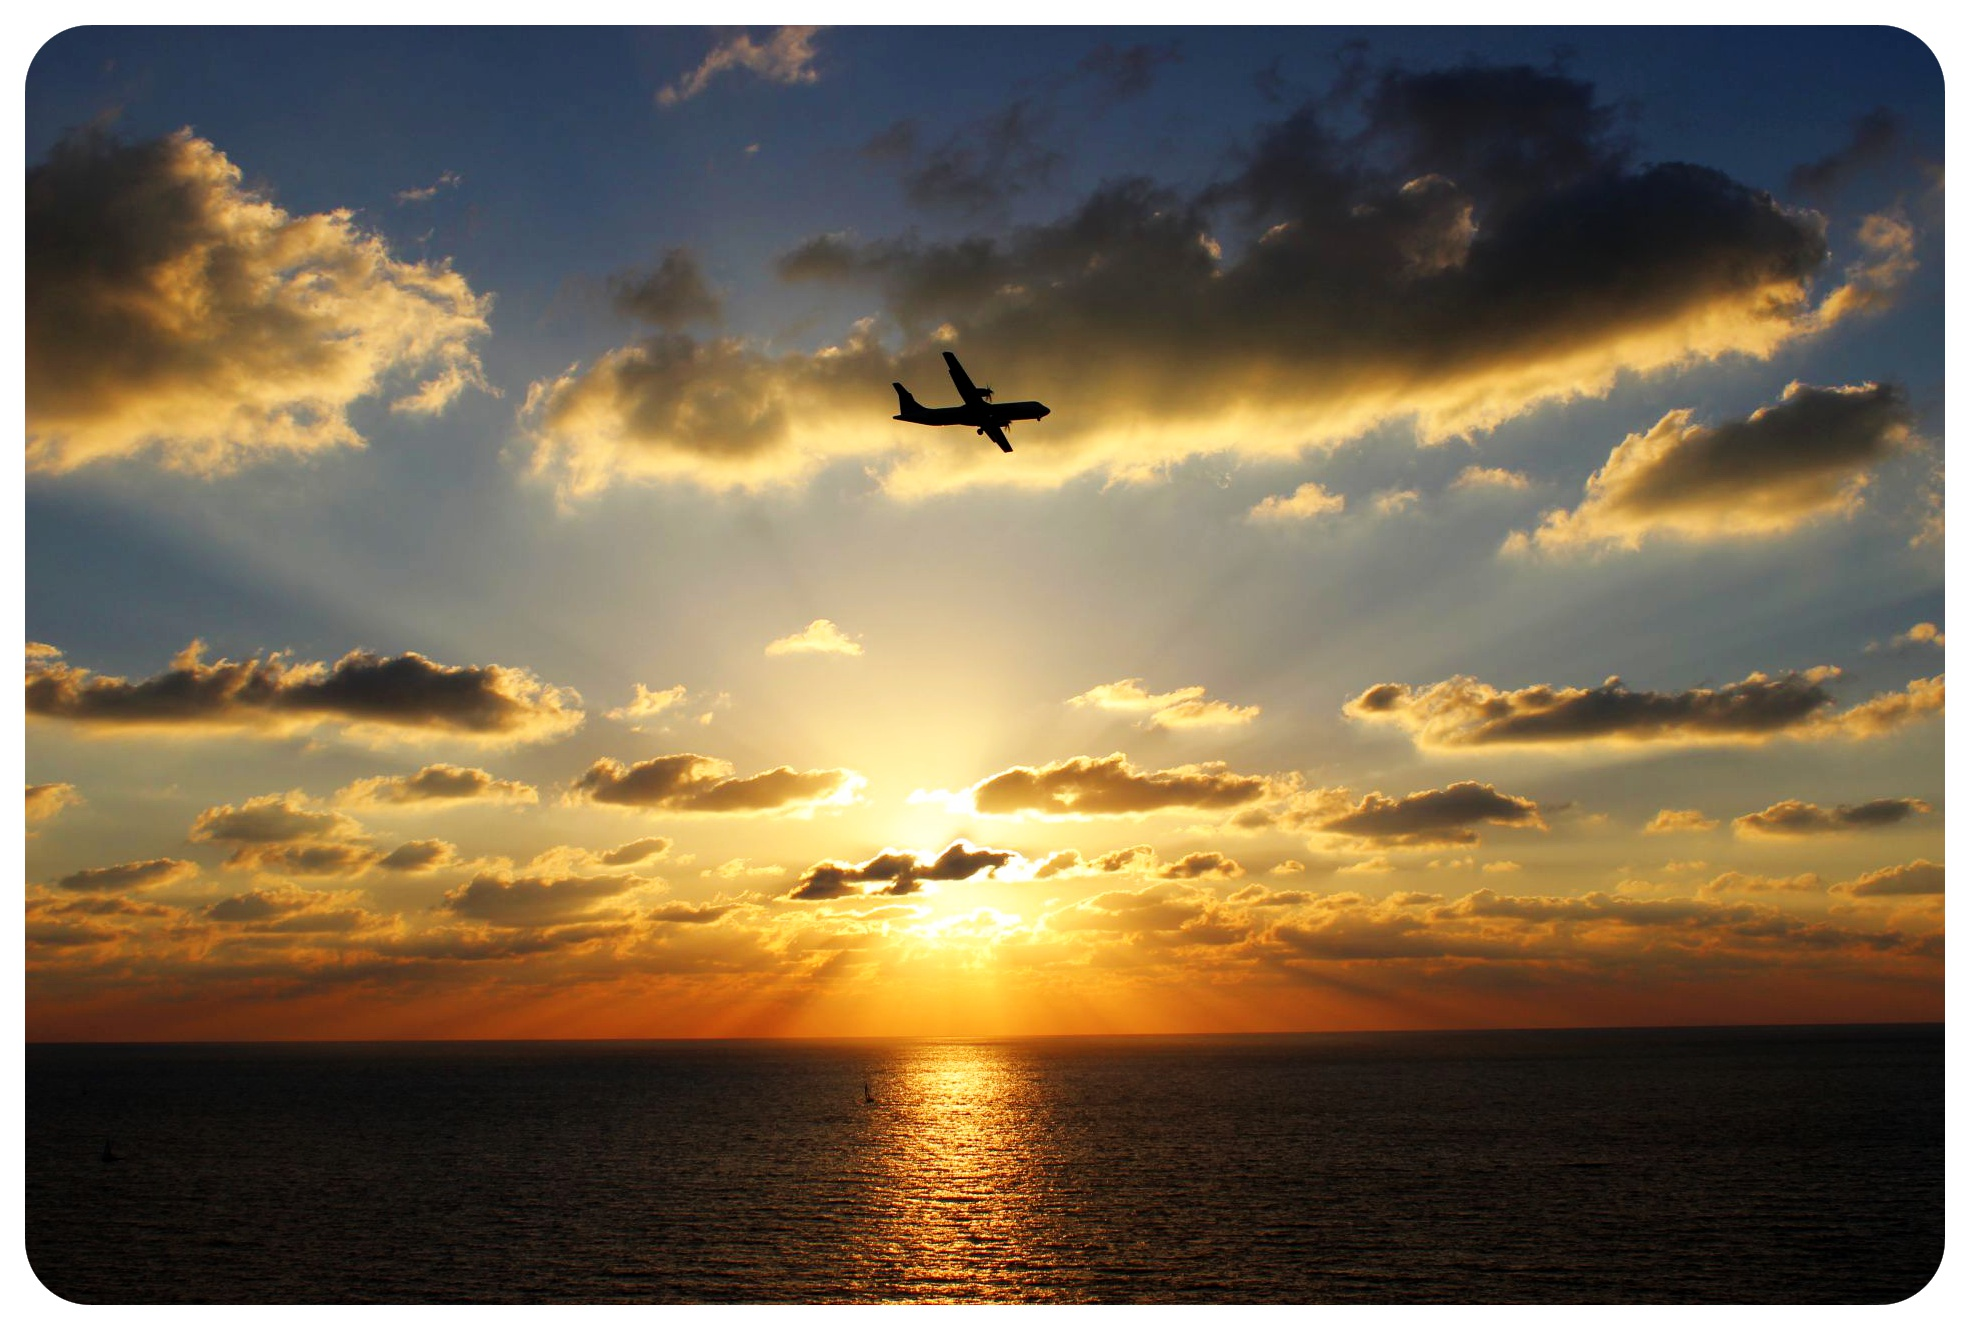 tel aviv sunset with plane